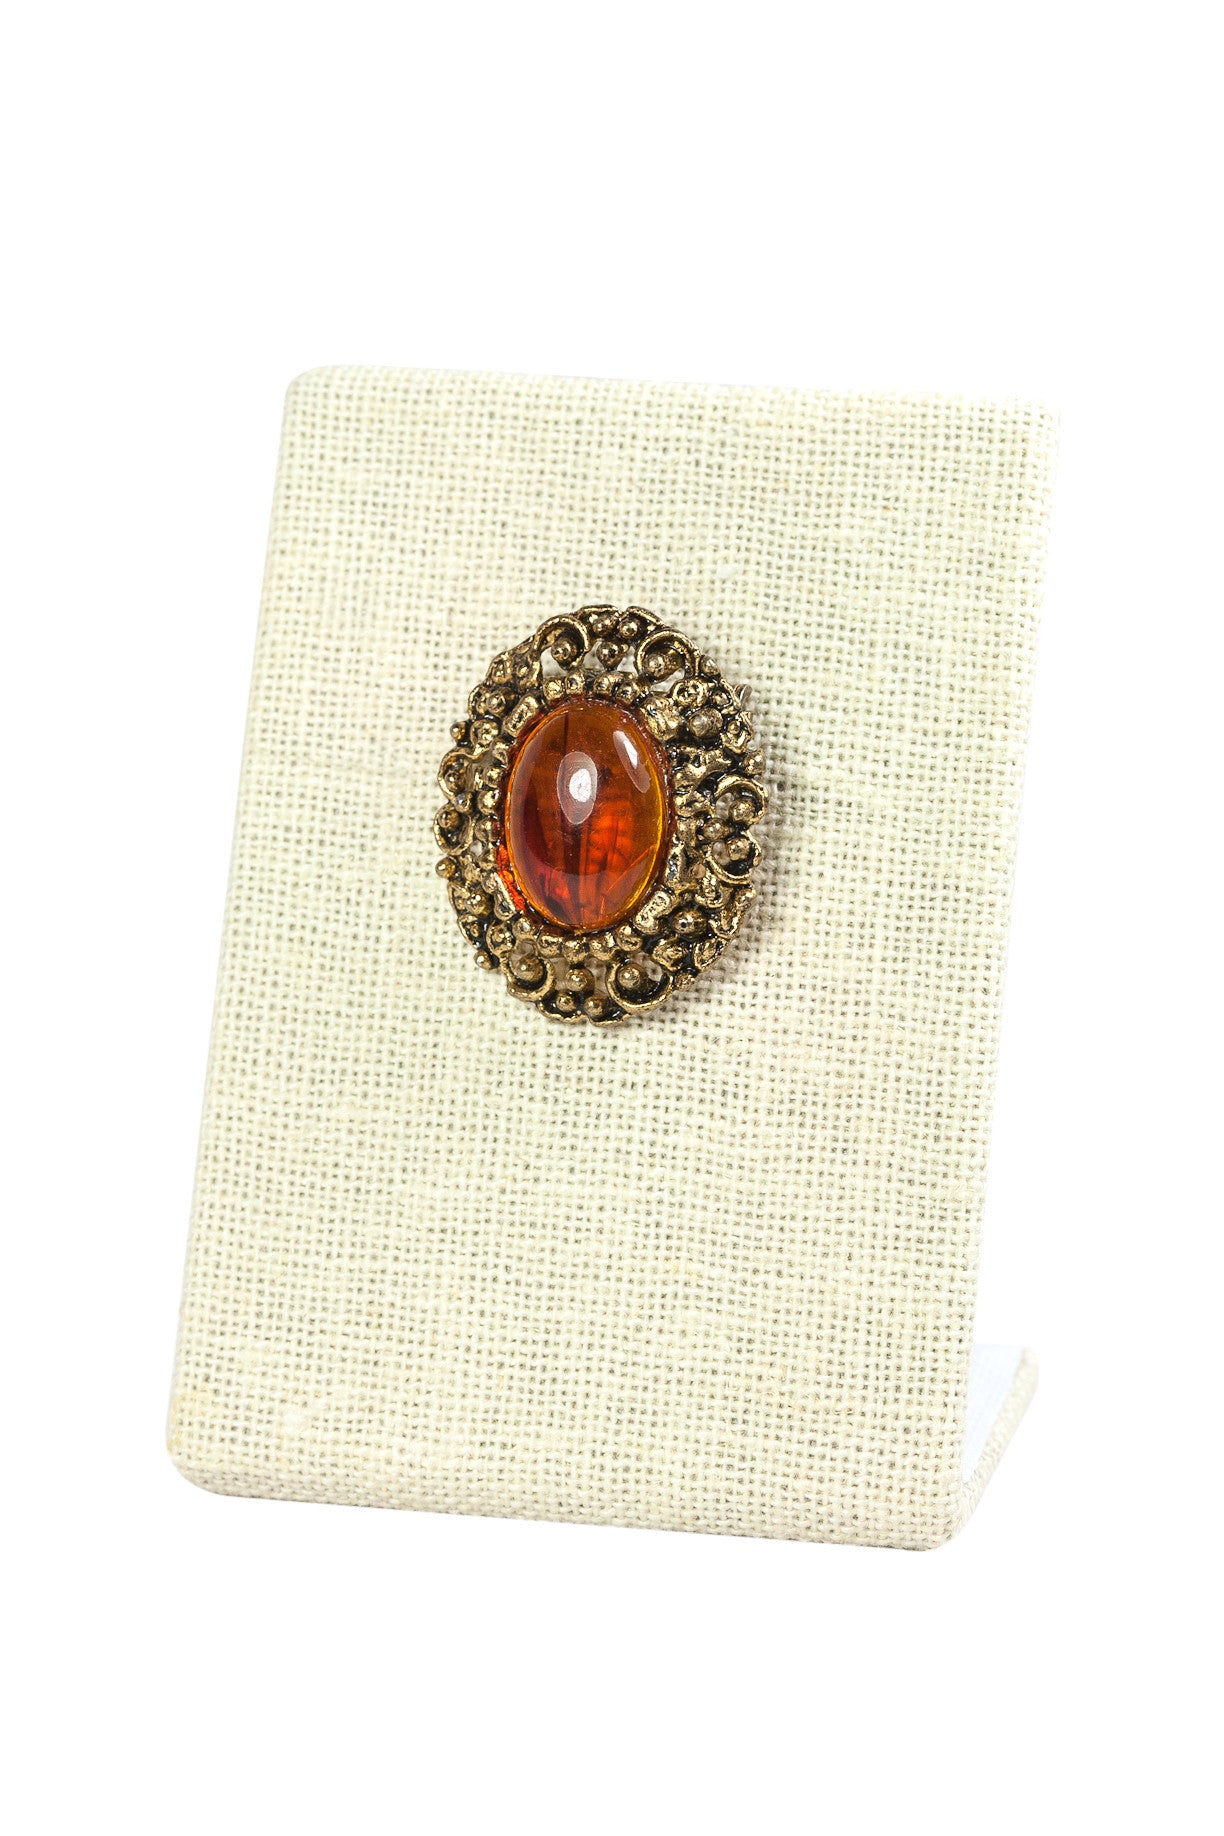 50's__Vintage__Mini Amber Brooch